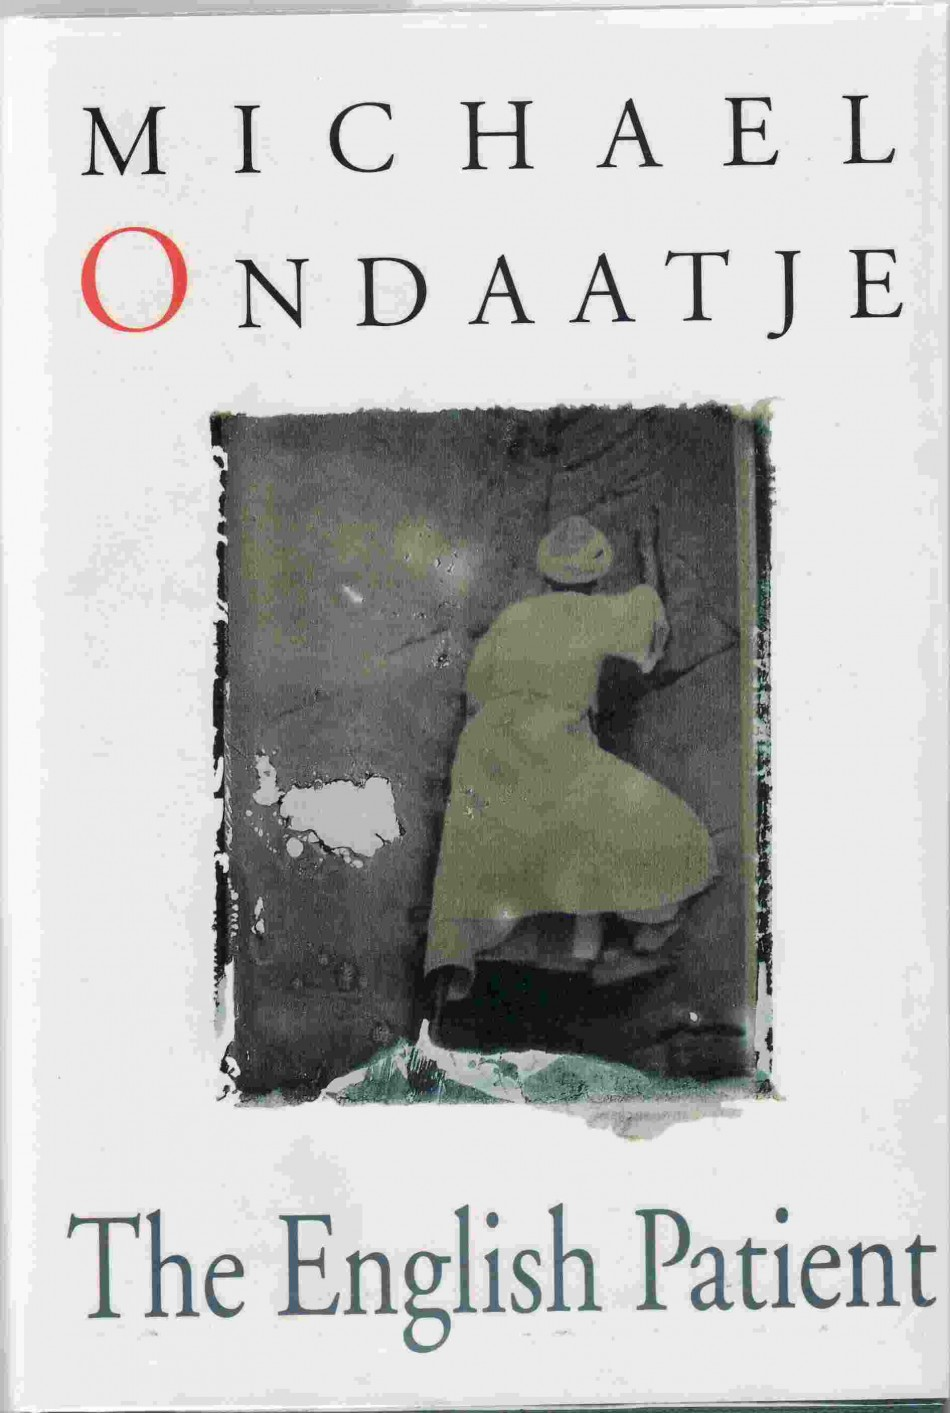 The English Patient by Michael Ondatjee